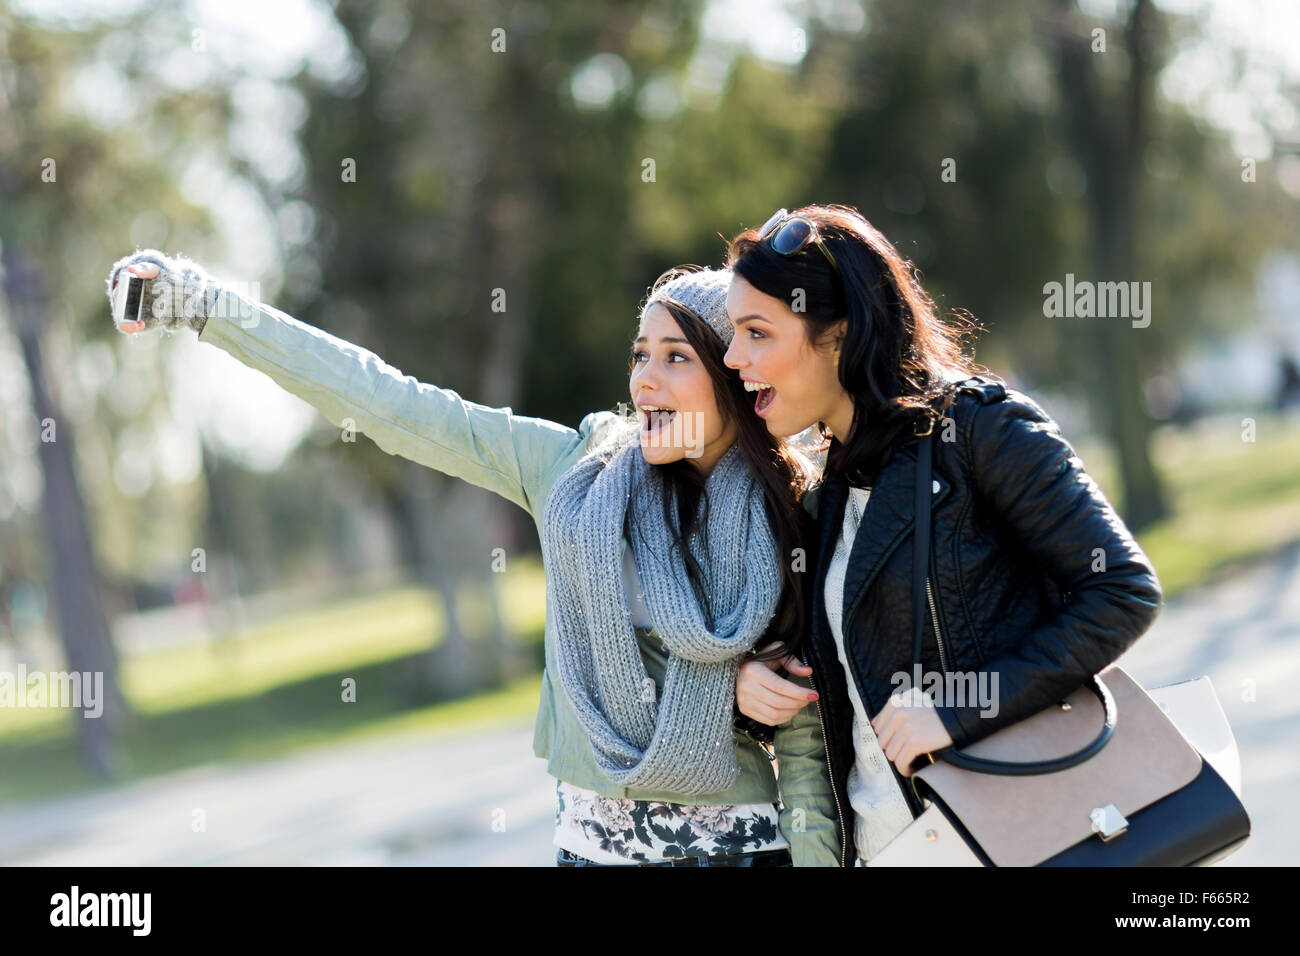 Two young women taking a selfie of themselves on a sunny day Stock Photo